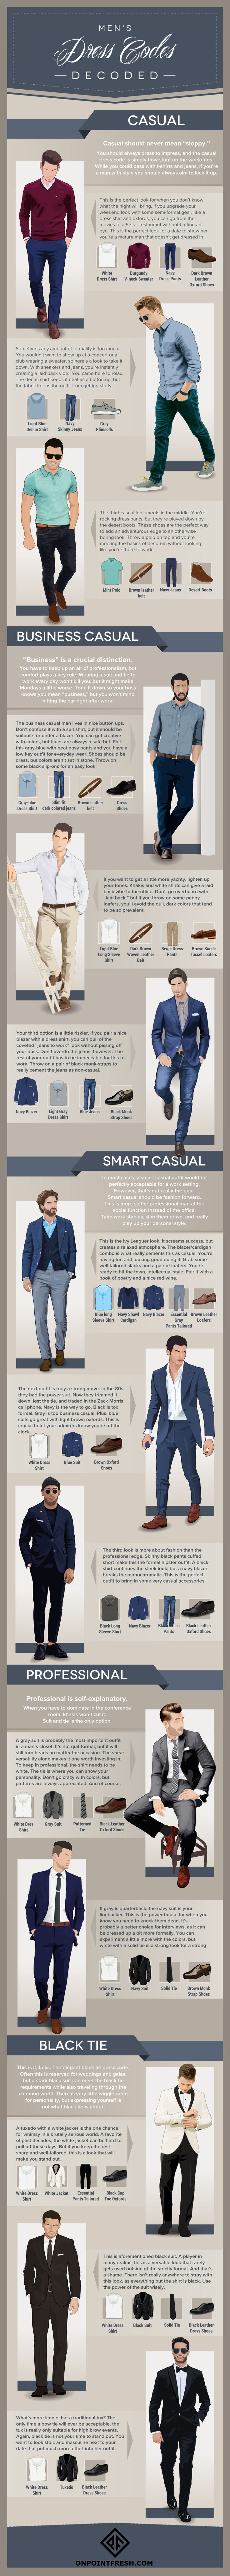 Men's Dress Codes Decoded [Infographic]   Supernatural Style